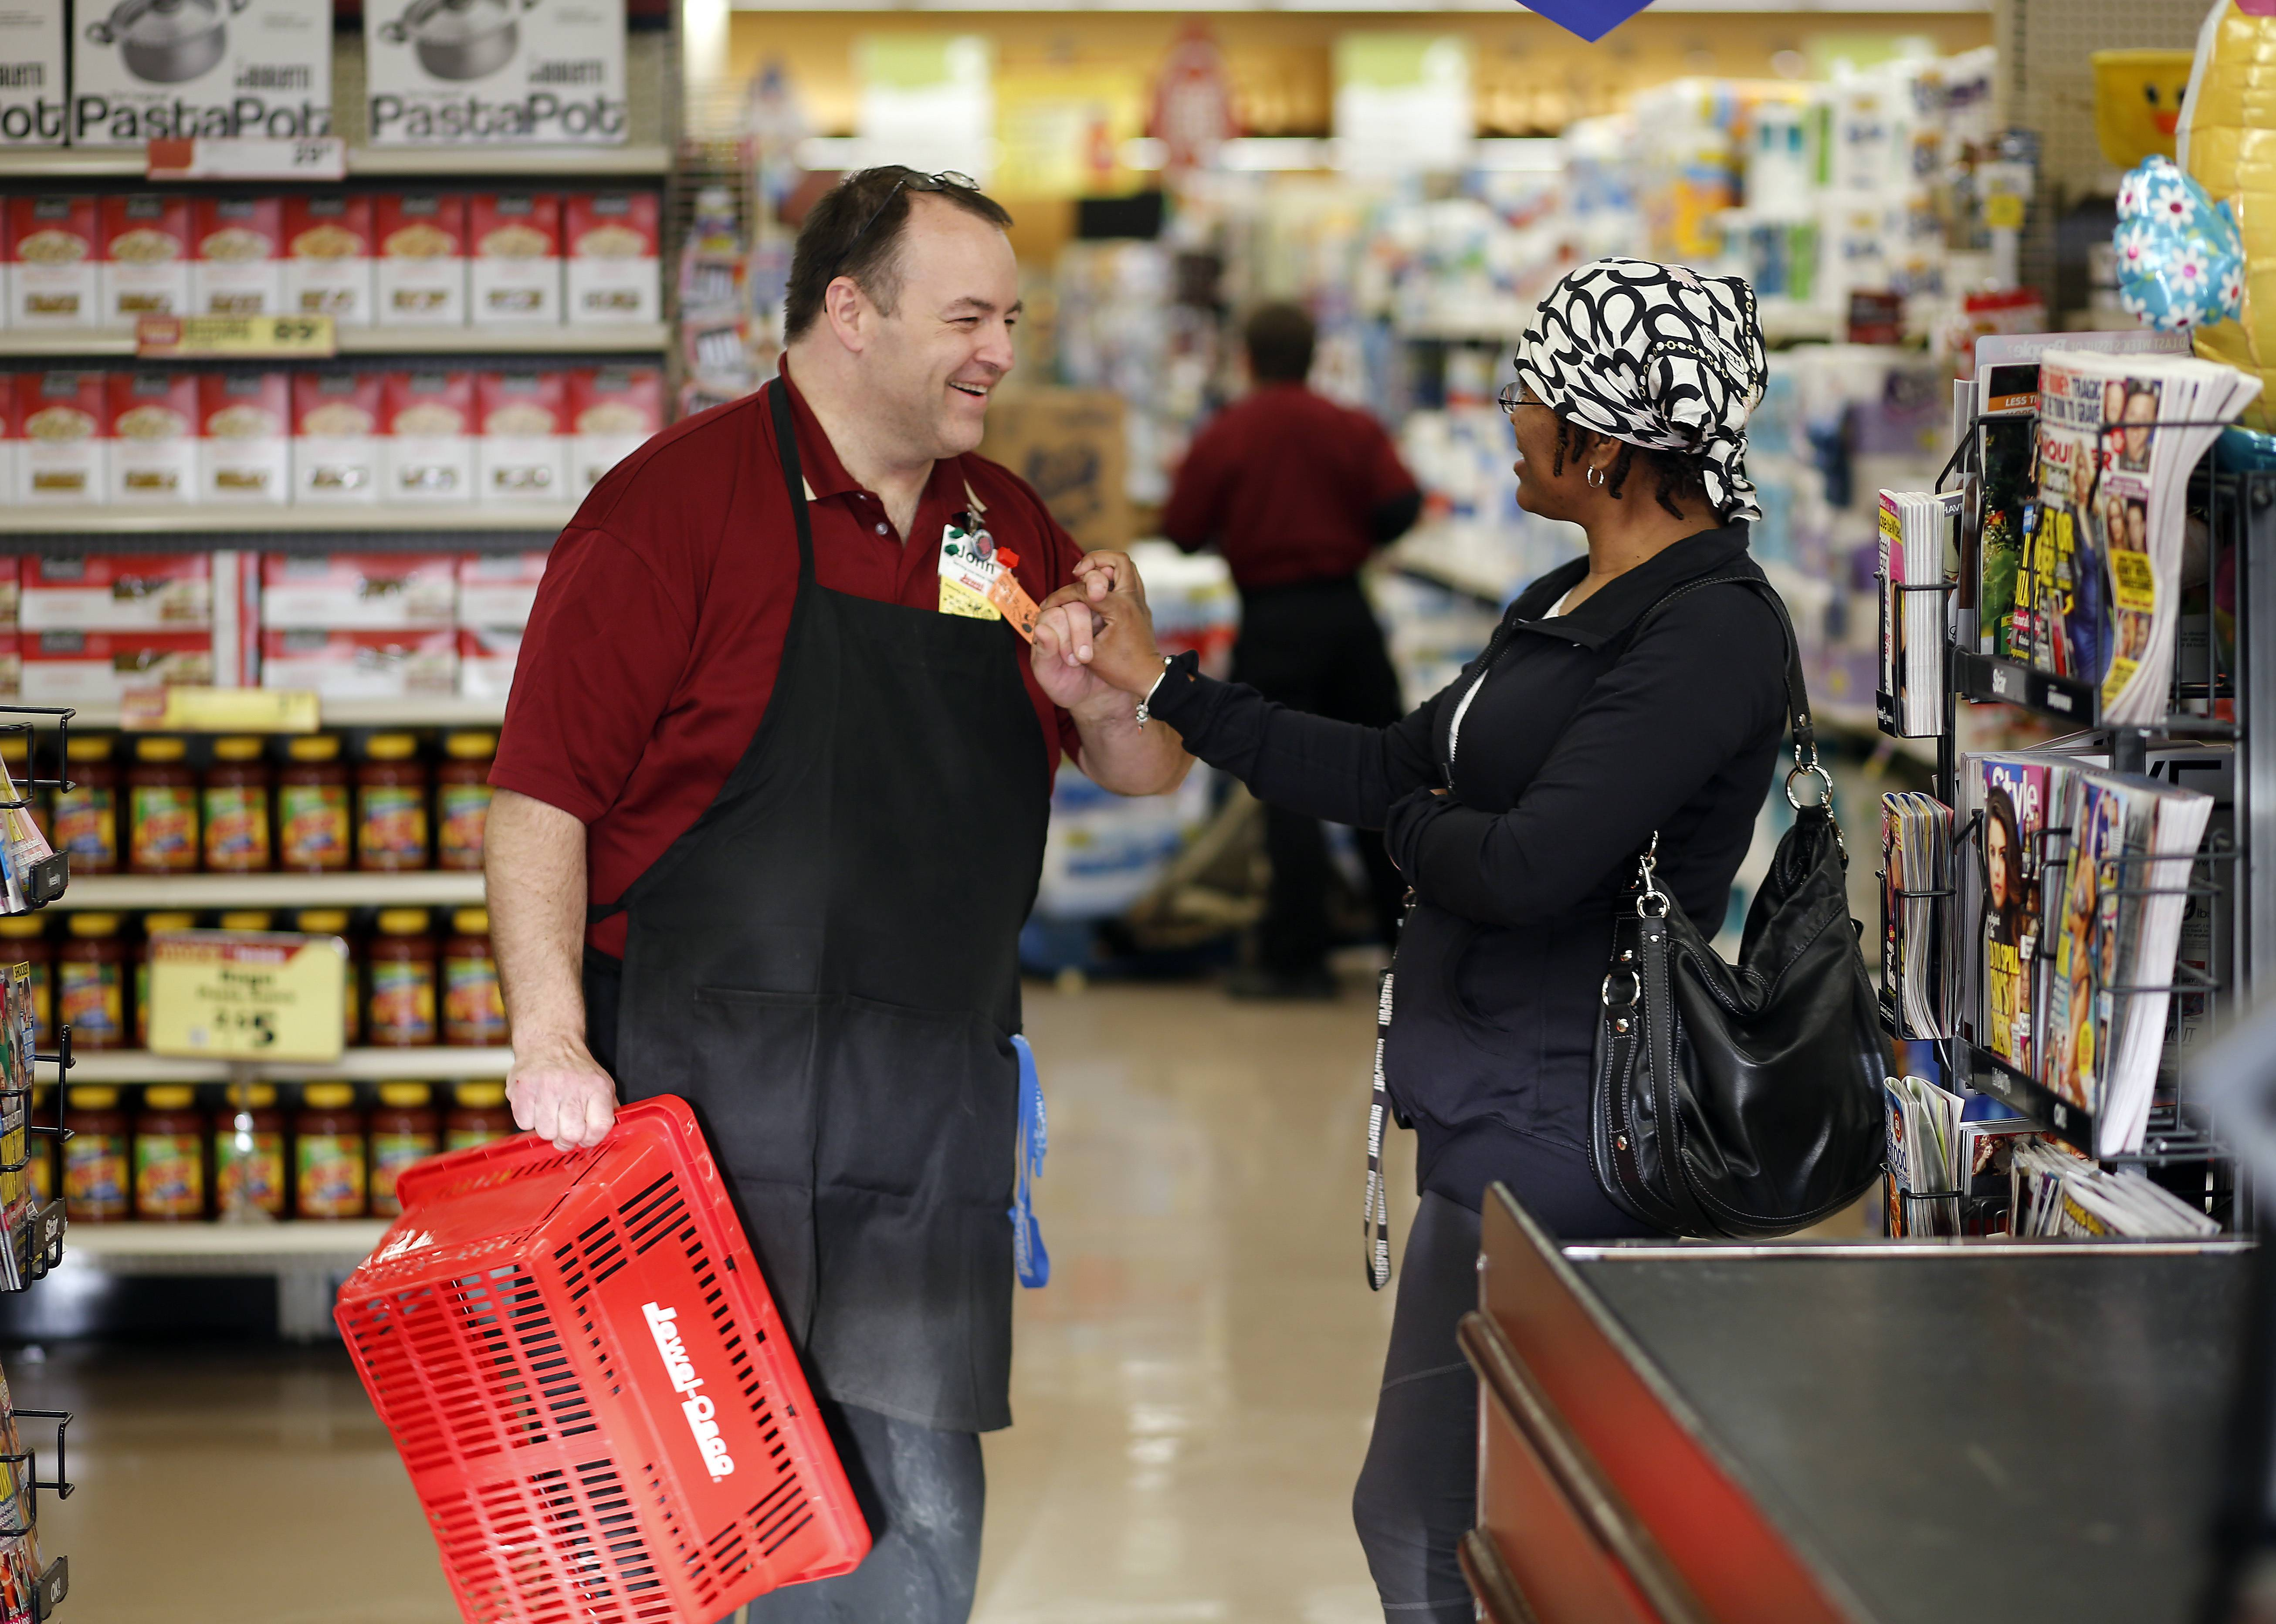 John Bohanek catches up with customer Patrice Dirl of St. Charles while working at Jewel in South Elgin.